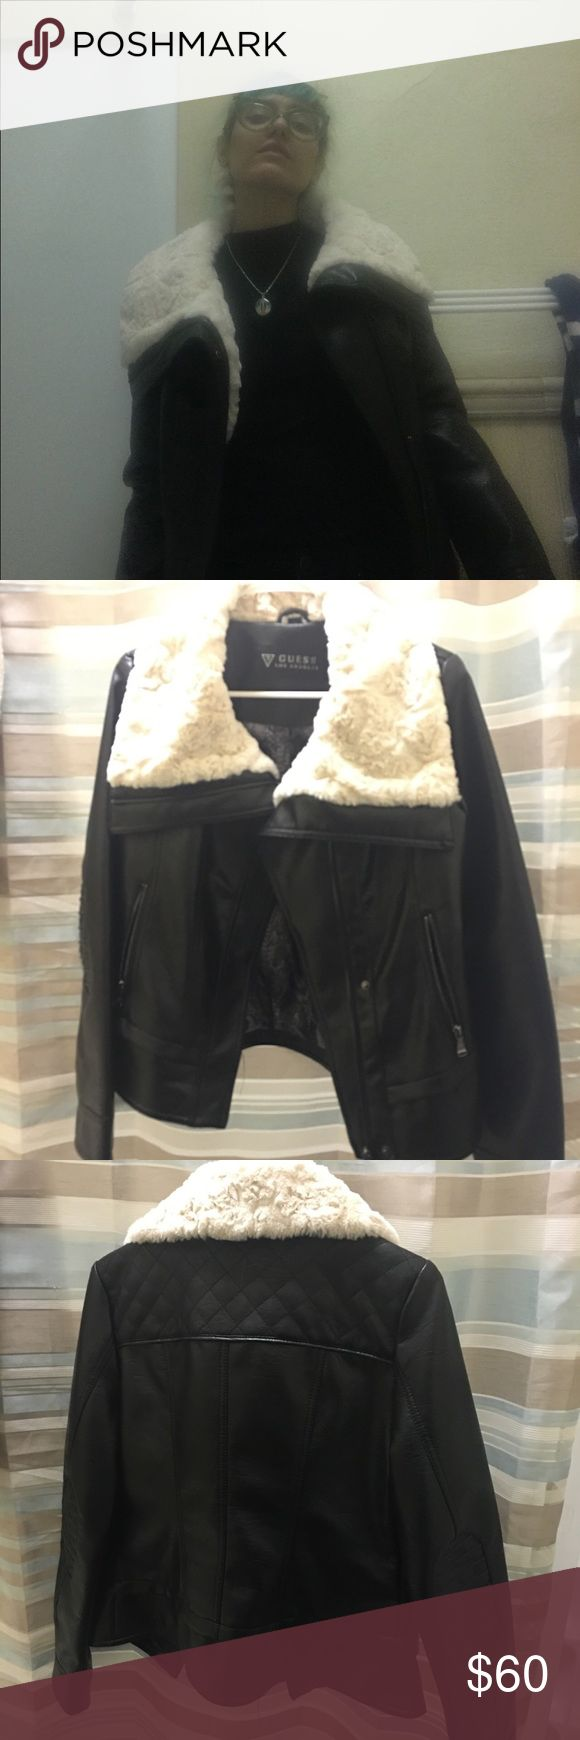 Guess brand fur leather jacket Guess jacket medium. Black faux leather with white/creme colour very very soft faux fur collar. Looks amazing on. You can zipper all the way up and fold the fur over and keeps you warm (as seen in last photo). Guess Jackets & Coats